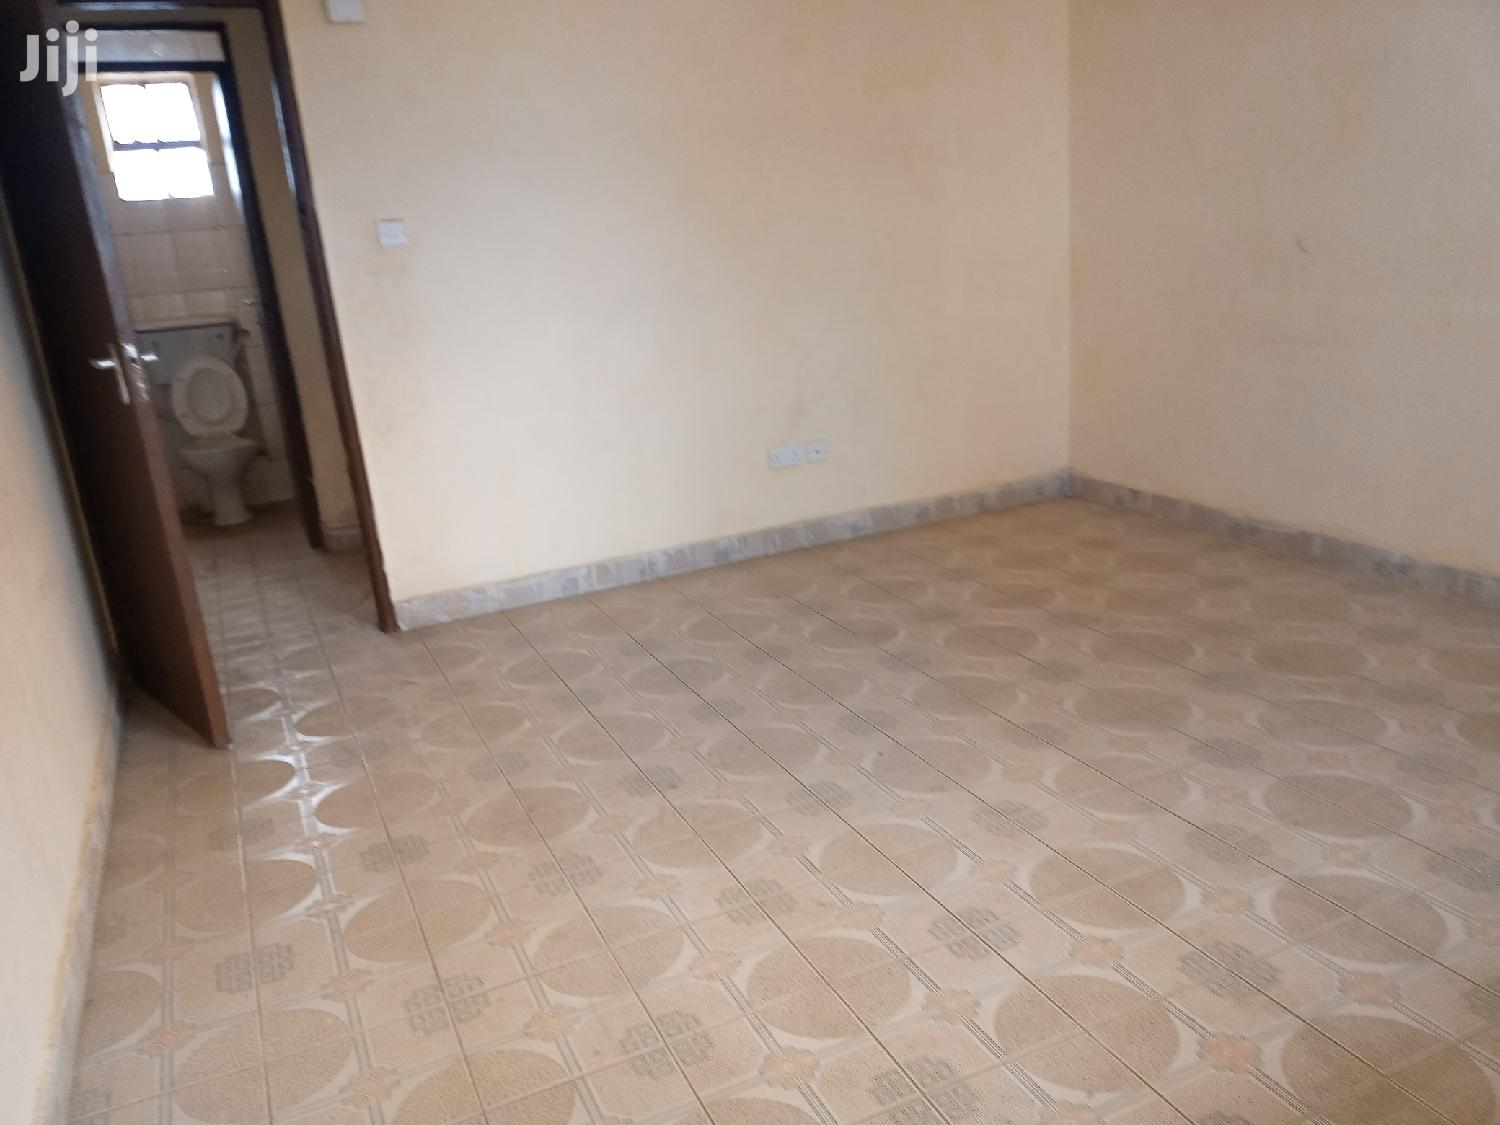 1,2 &3 Bedrooms For Rent In Ongata Rongai Nkoroi | Houses & Apartments For Rent for sale in Ongata Rongai, Kajiado, Kenya